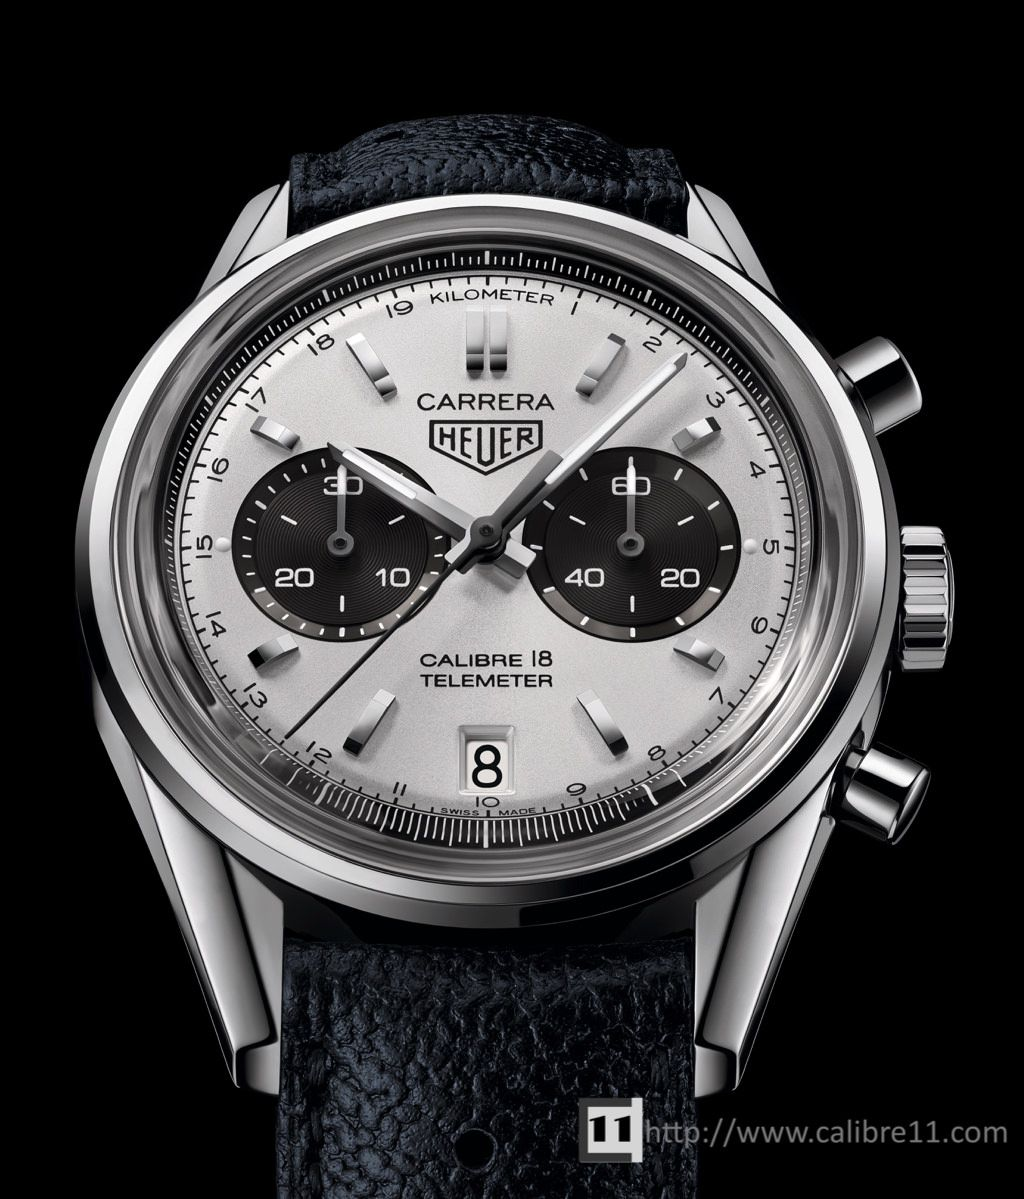 05acc477a8a Heuer Carrera Calibre 18 Telemeter - close enough to be called a reissue of  classic Heuer. Cal 18 is Sellita SW300 with DD 2223 chronograph module.